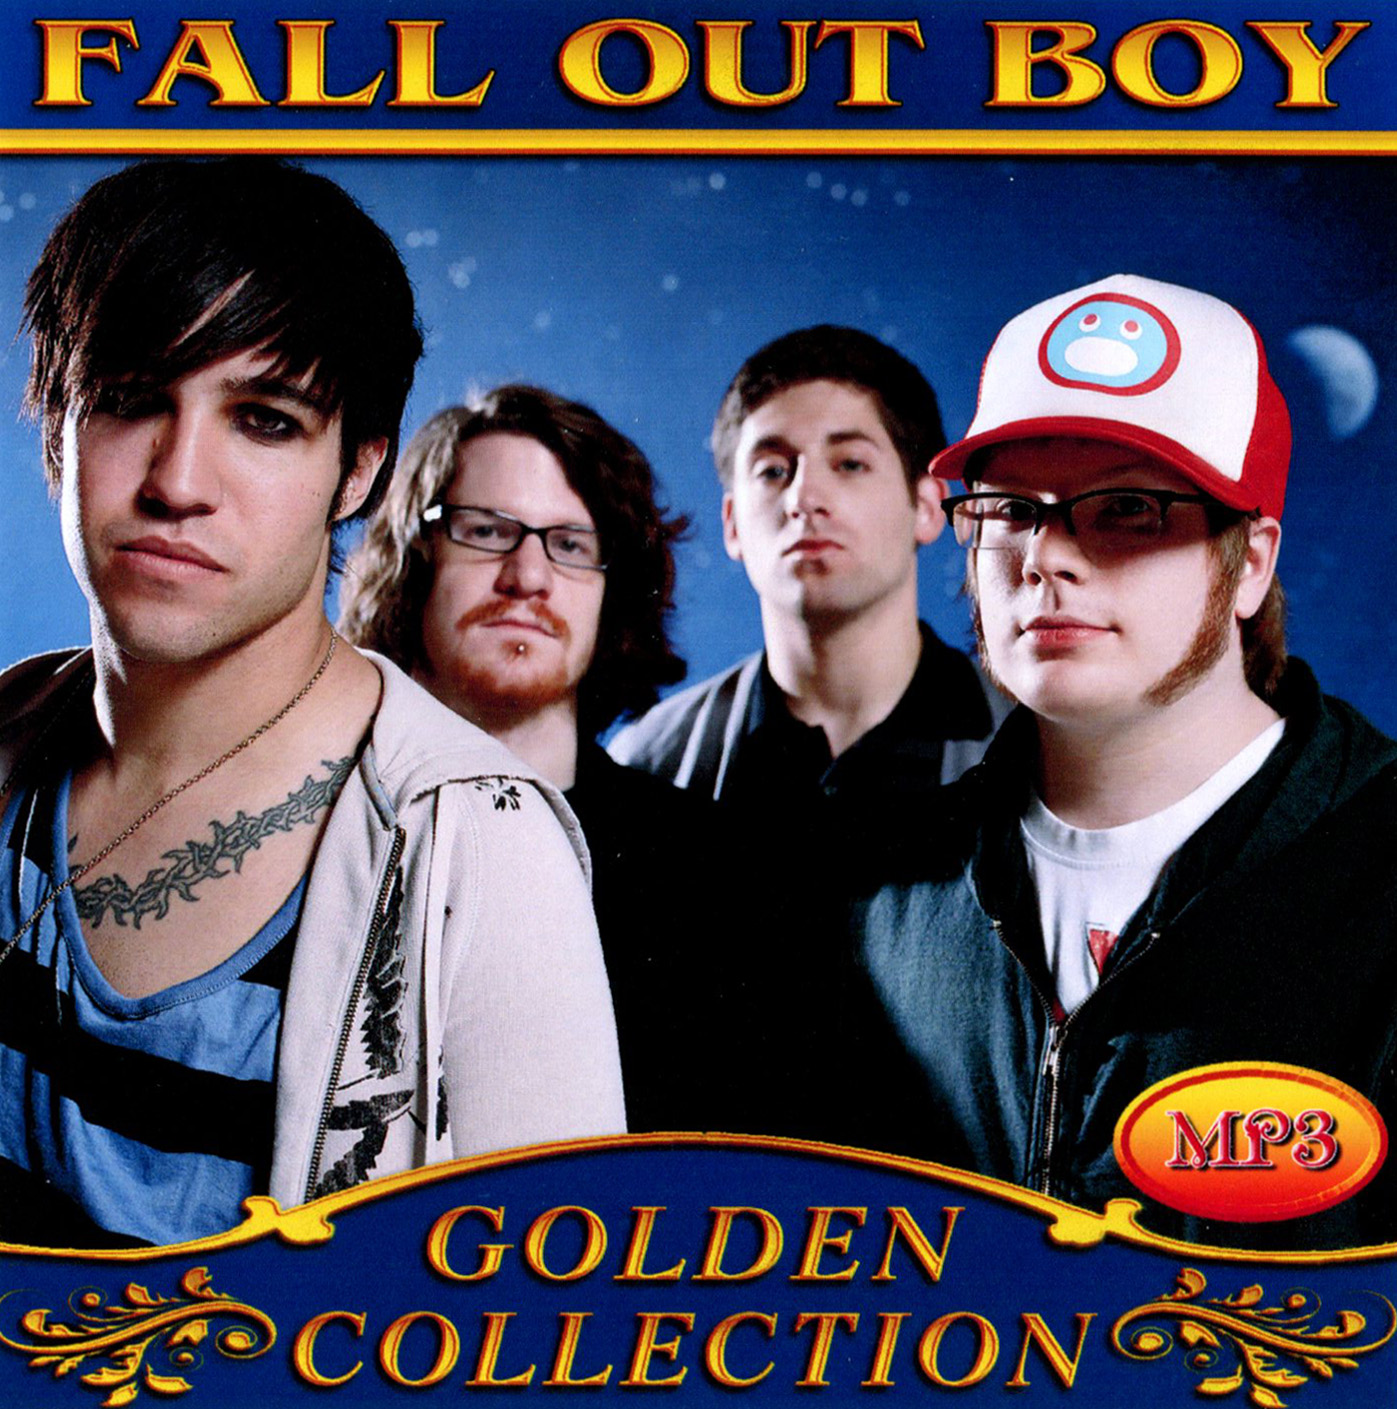 Fall Out Boy [mp3]